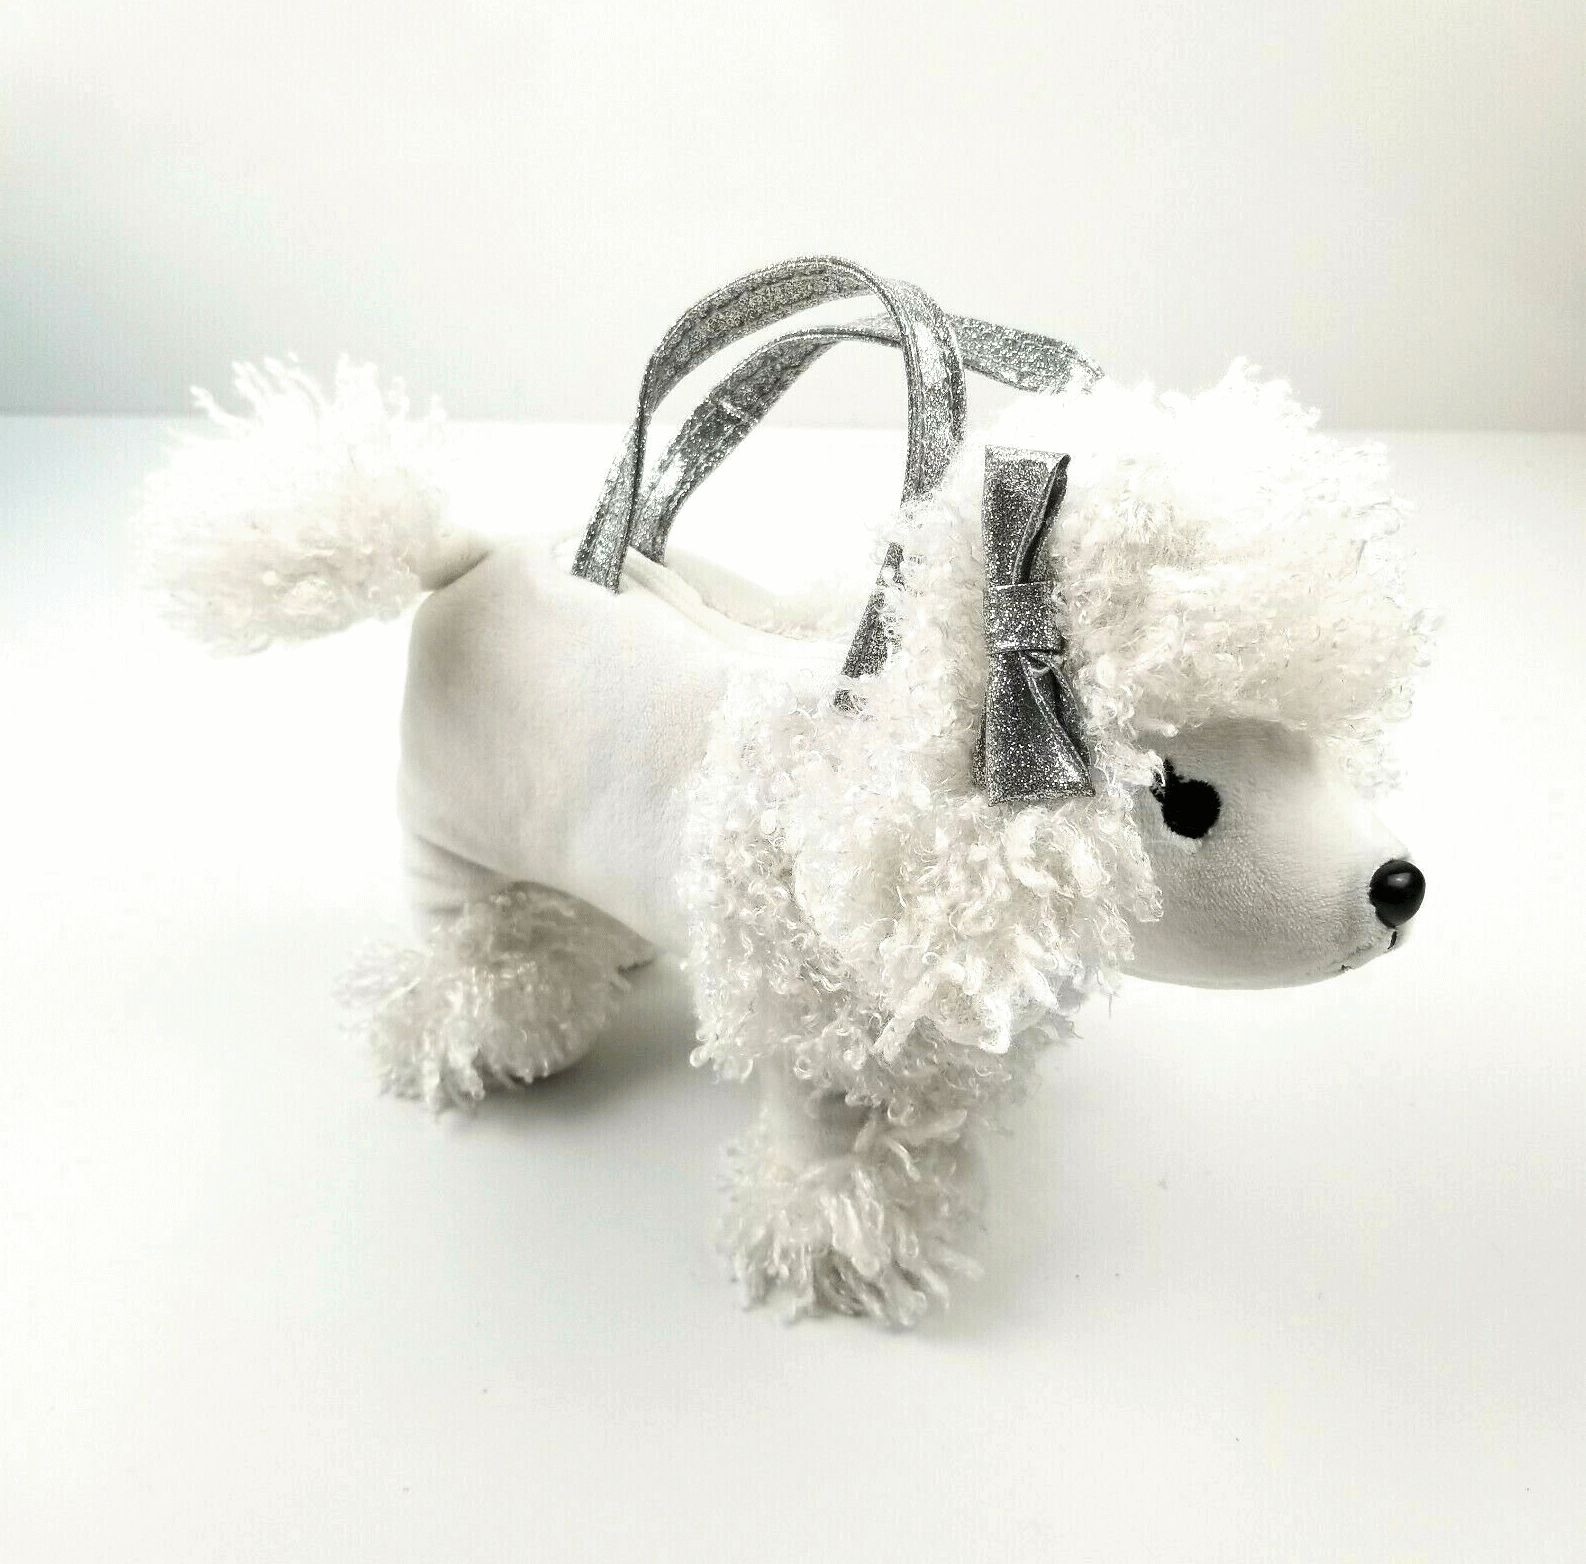 Gymboree Posh and Playful Sophie White Poodle Purse Girls w/ Glitter Handles Bow - $9.99